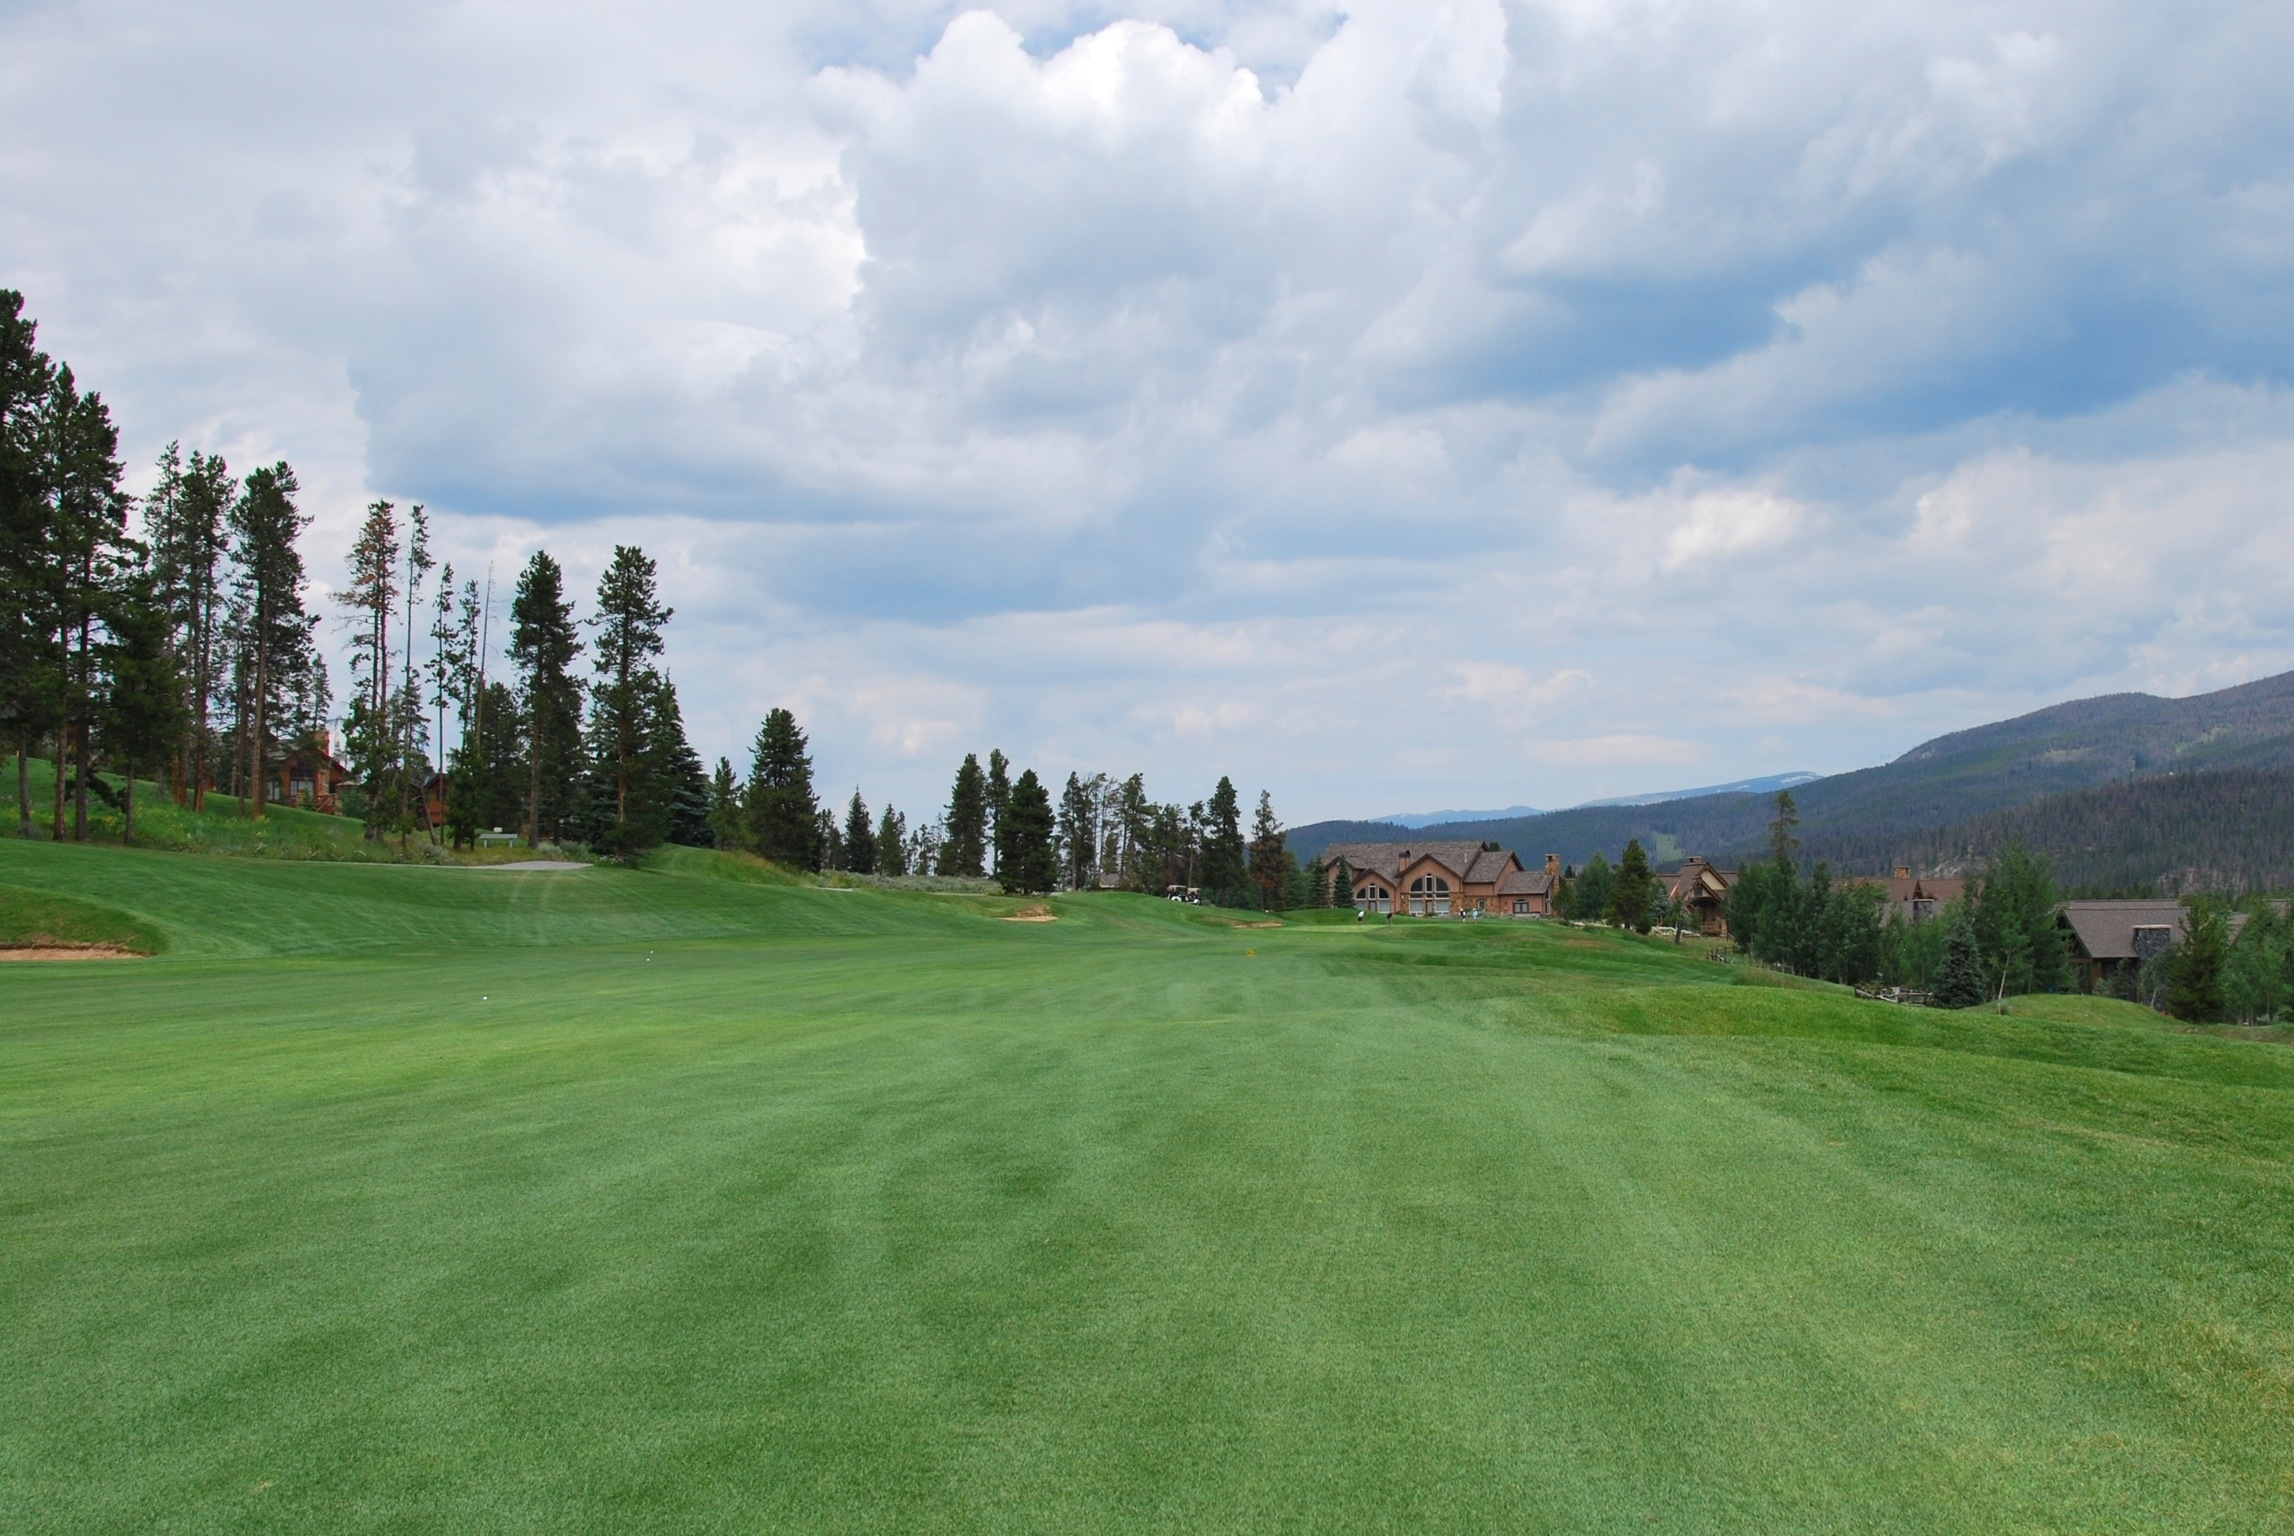 Overview of golf course named Breckenridge Golf Club